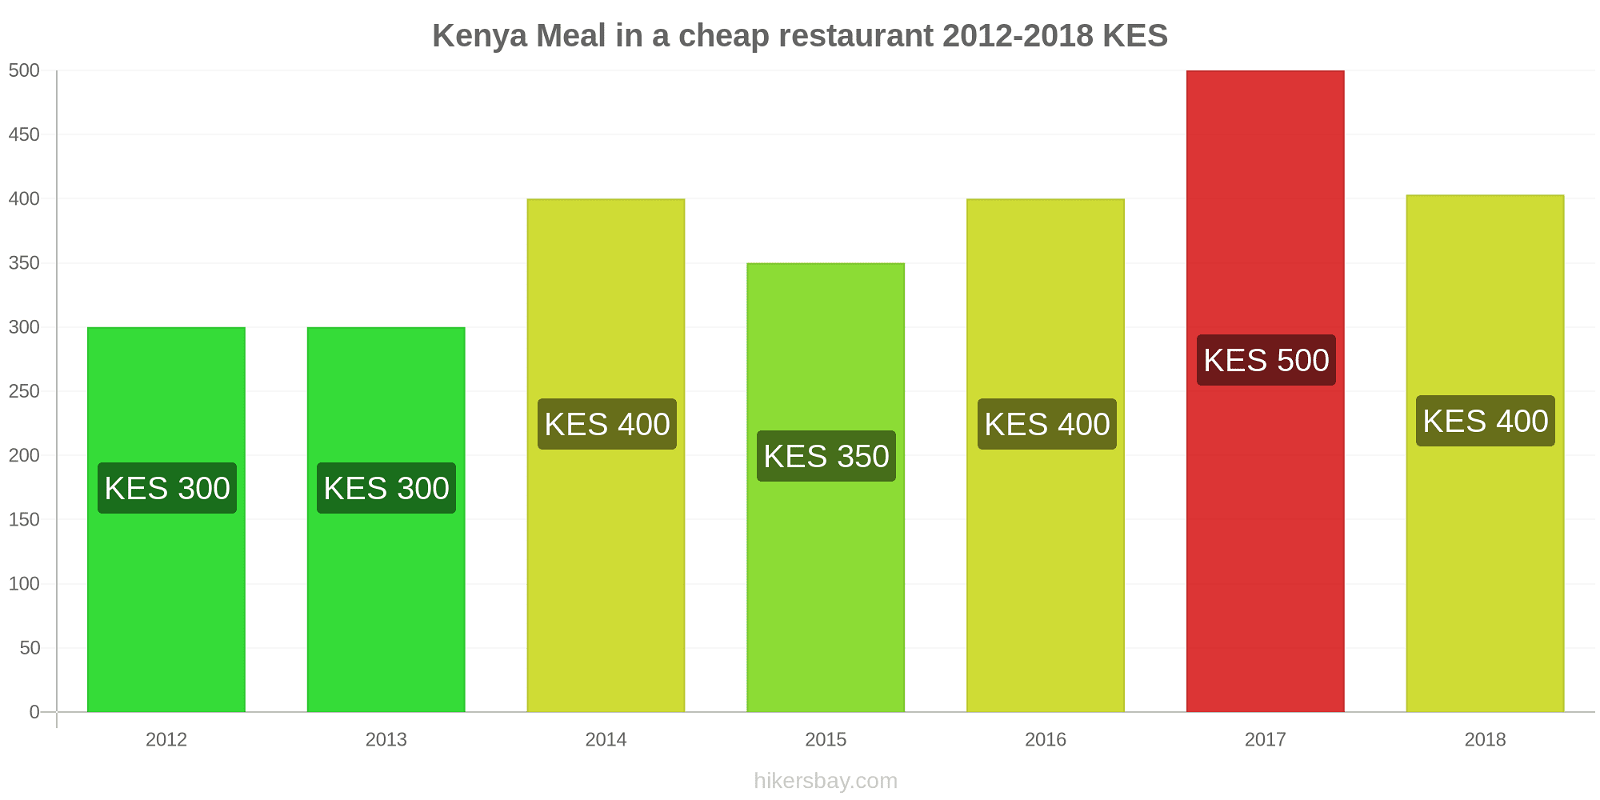 Kenya price changes Meal in a cheap restaurant hikersbay.com